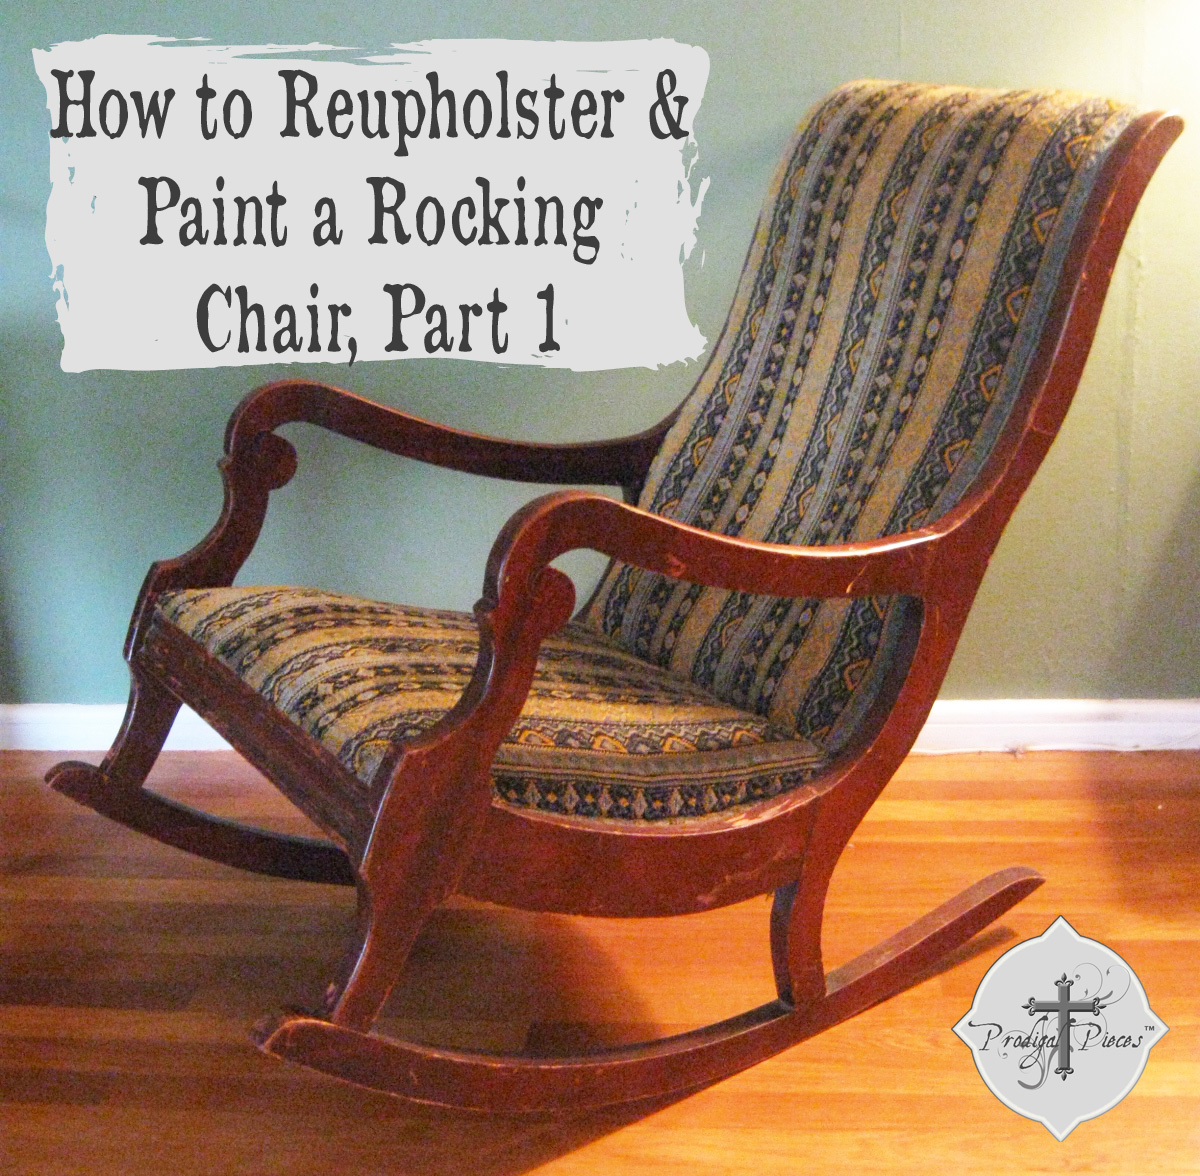 Reupholster Chair Upholster And Paint A Rocking Chair Part 1 Prodigal Pieces